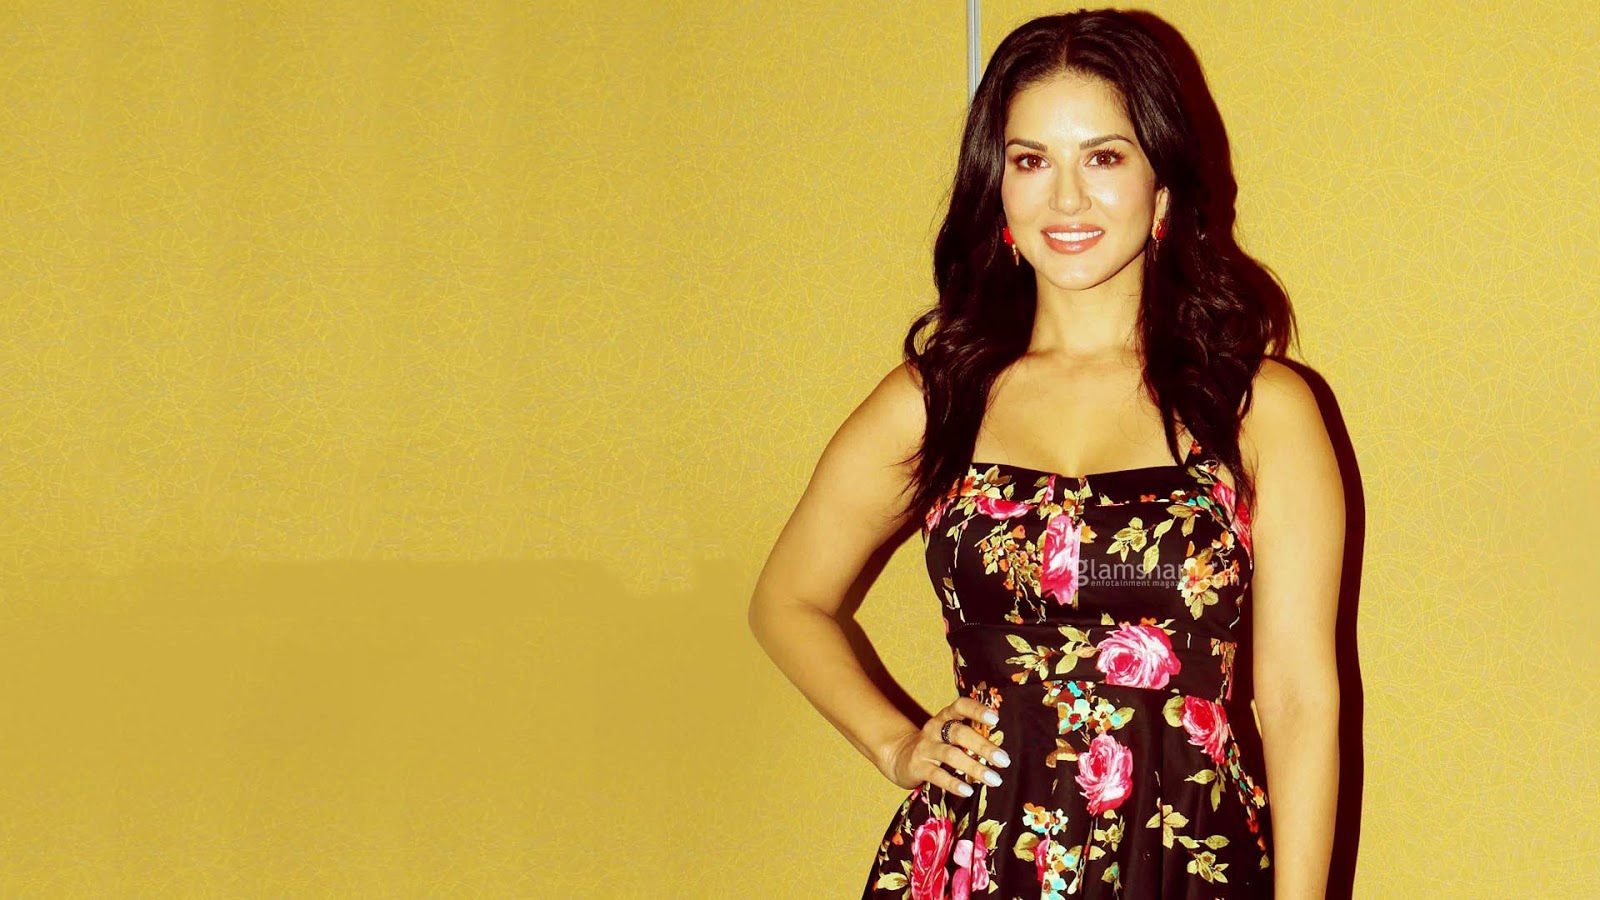 Sunny Leone Wallpapers Hd Download Free 1080P -1816